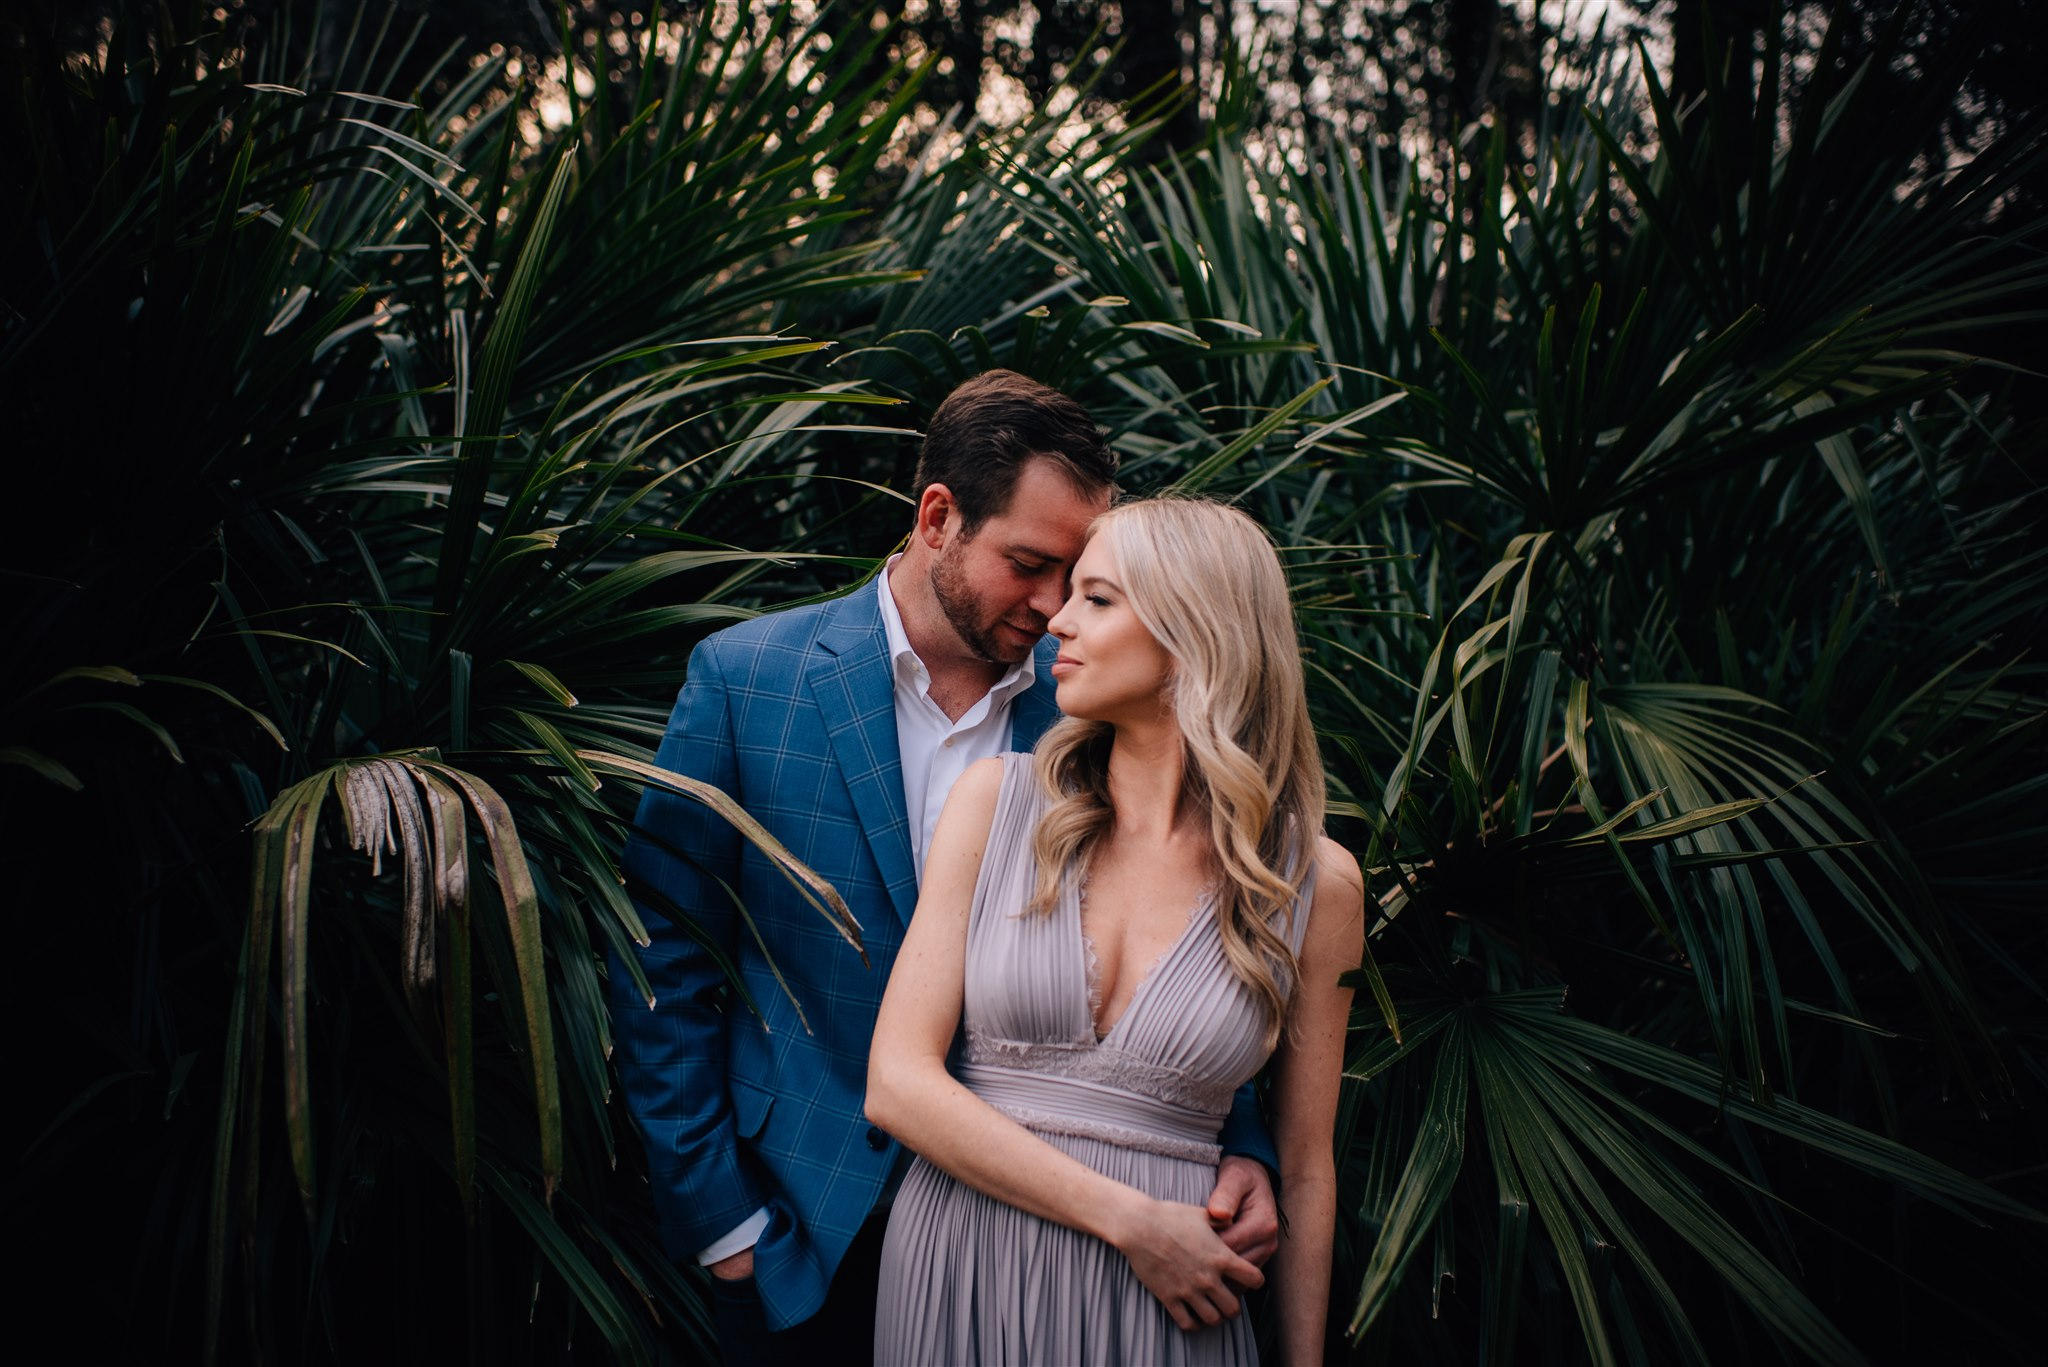 downtown raleigh engagement session - raleigh engagement - north carolina wedding photographer - raleigh wedding photographer